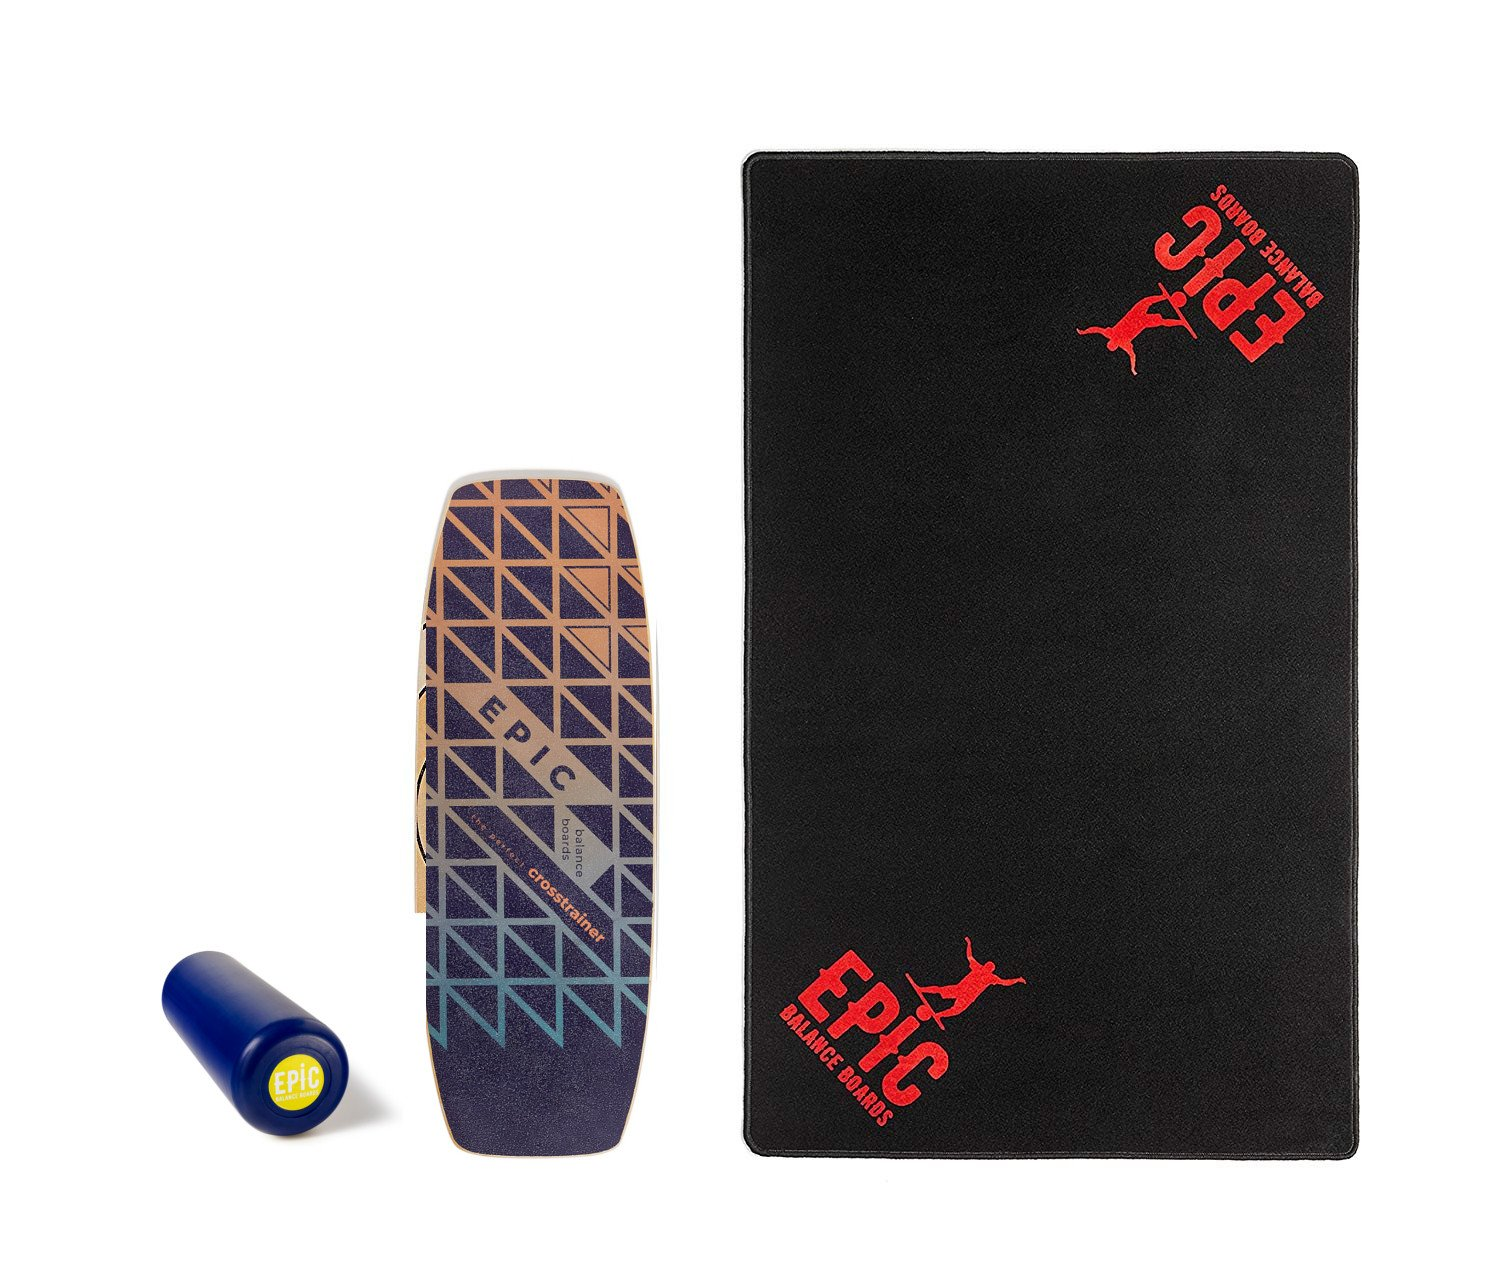 Epic Gamma + Floor MAT Balance Board - Balance Trainer - Epic Balanceboards